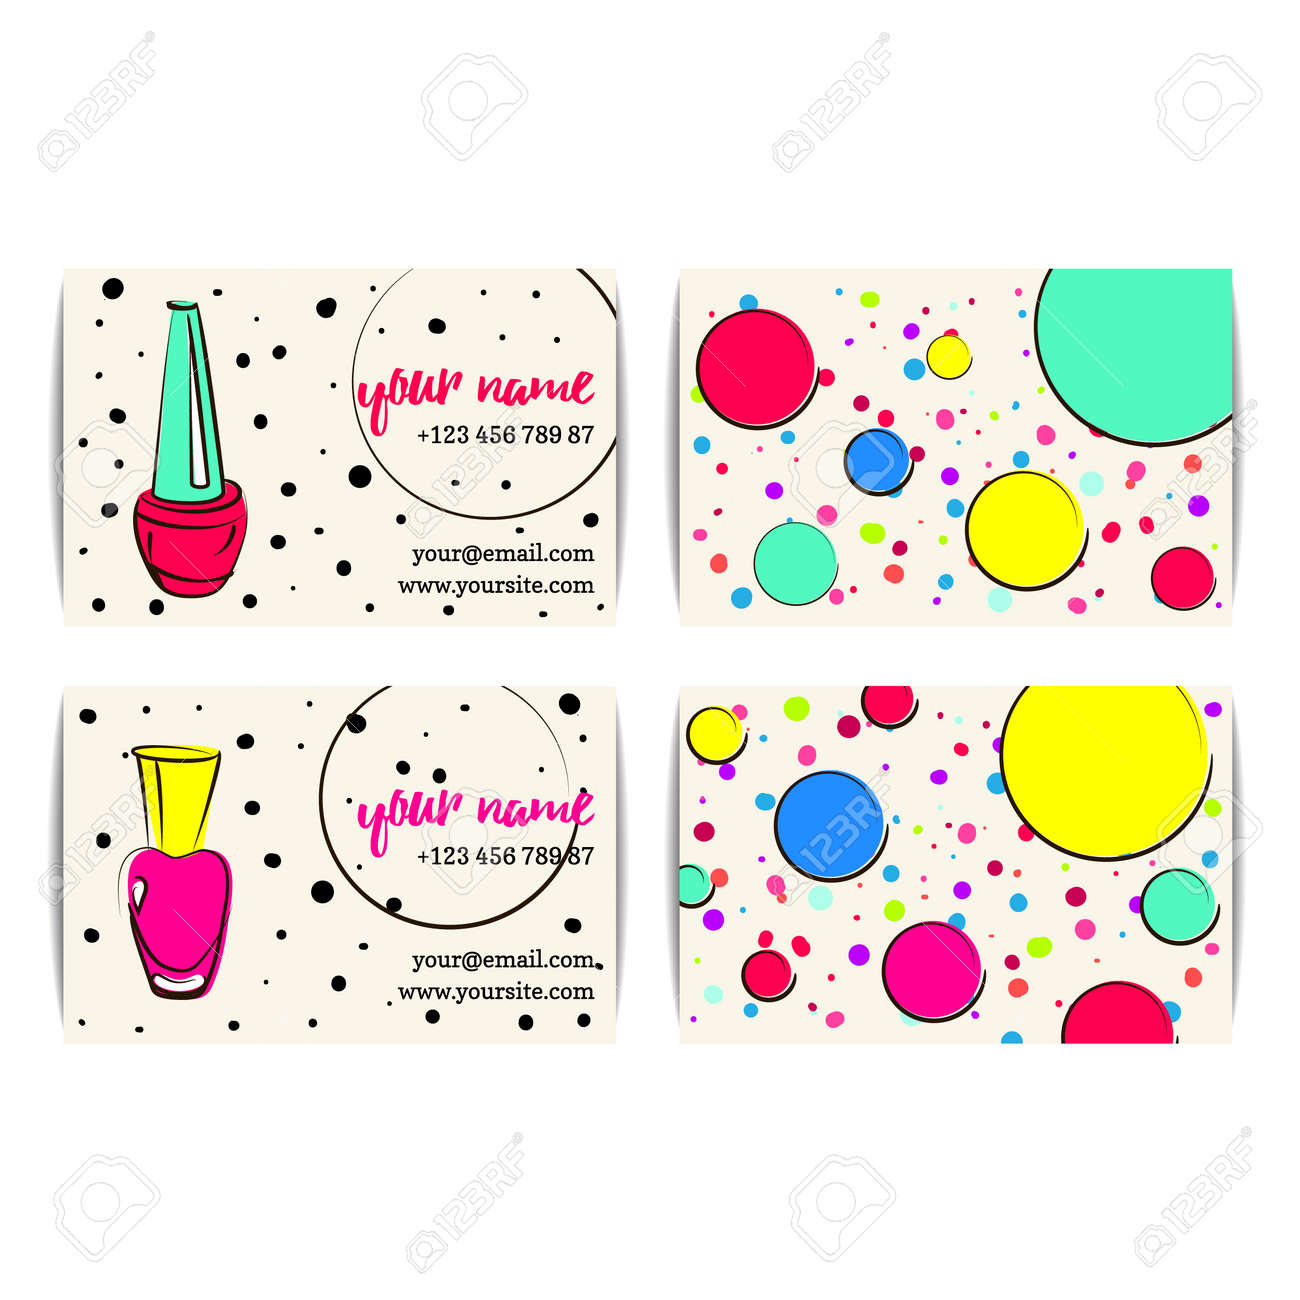 Business Cards Clip Art - Clipart &vector Labs :) •